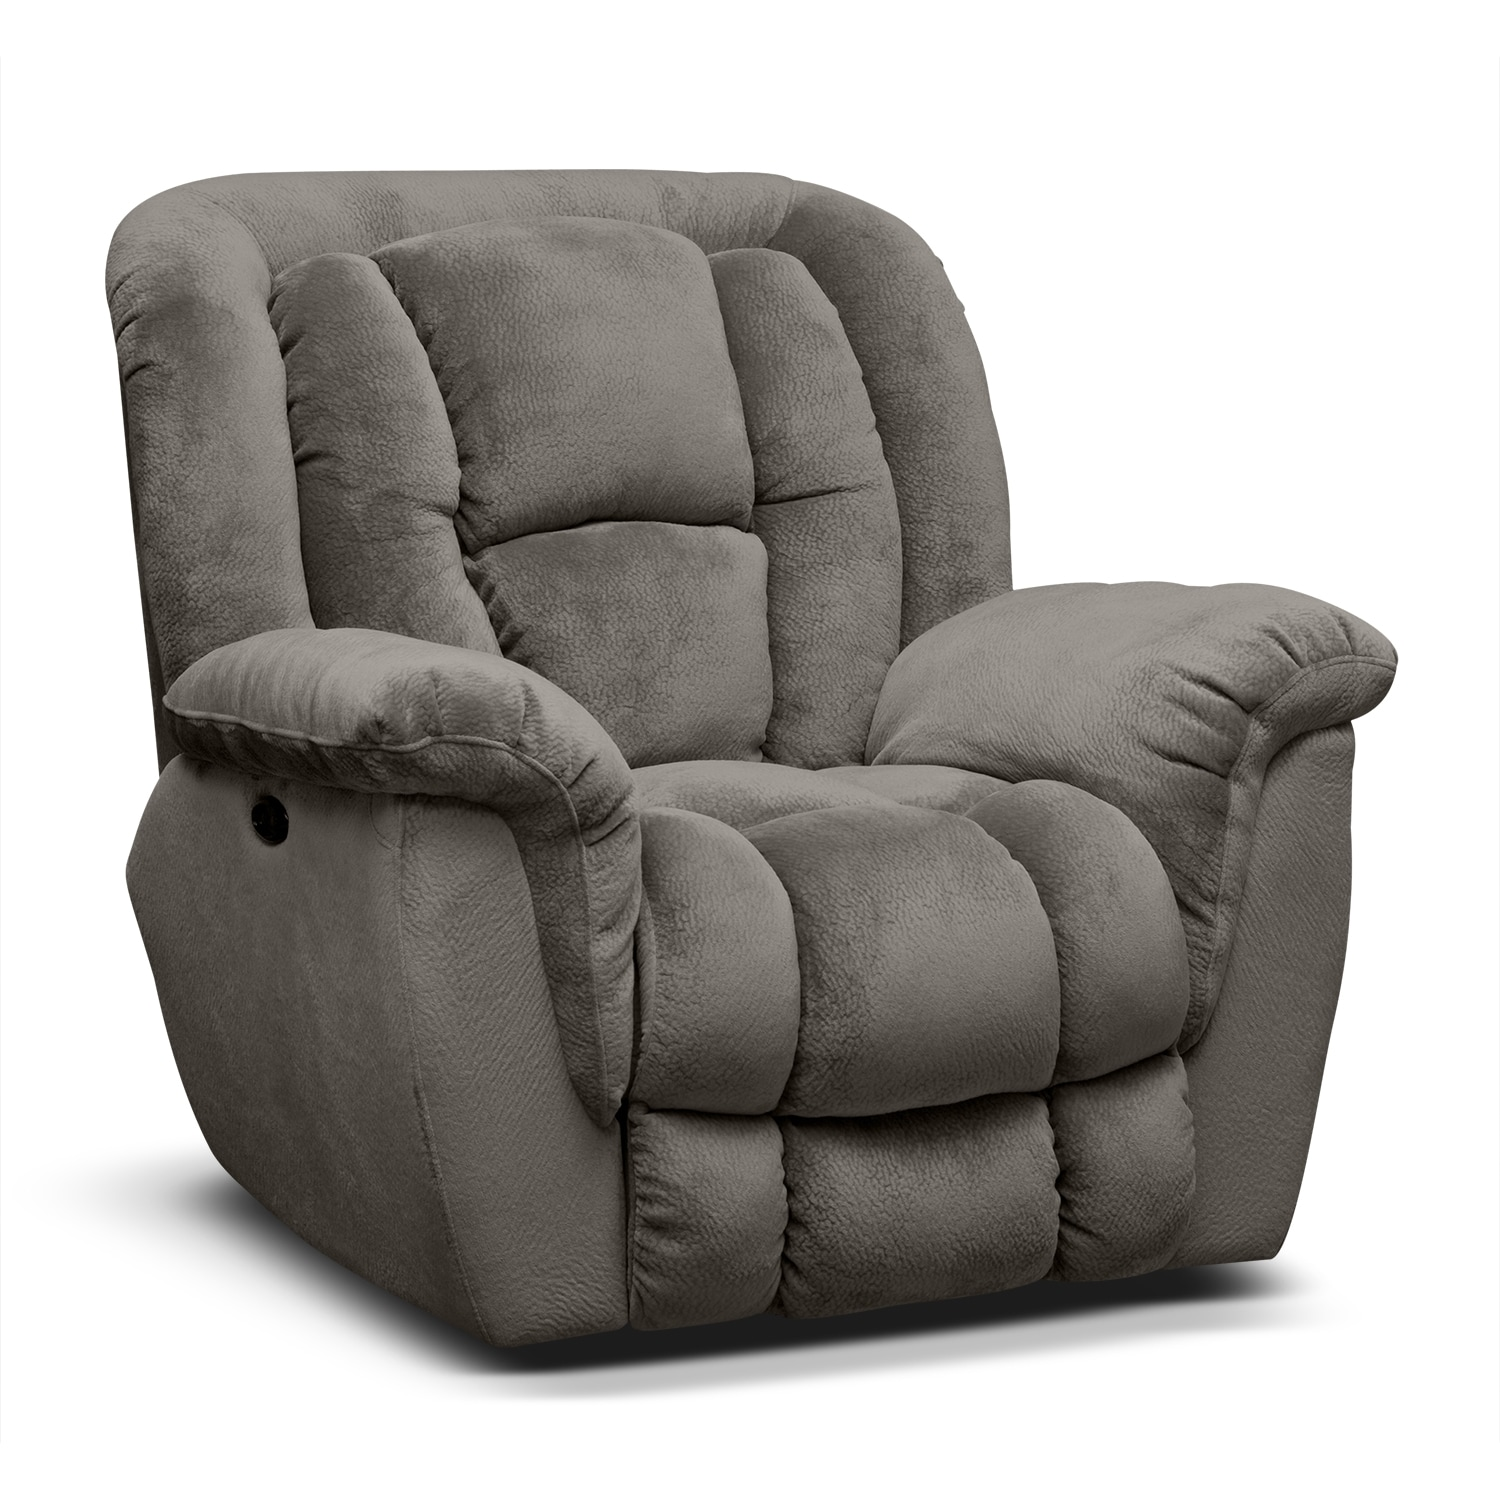 Mammoth Power Recliner - Gray